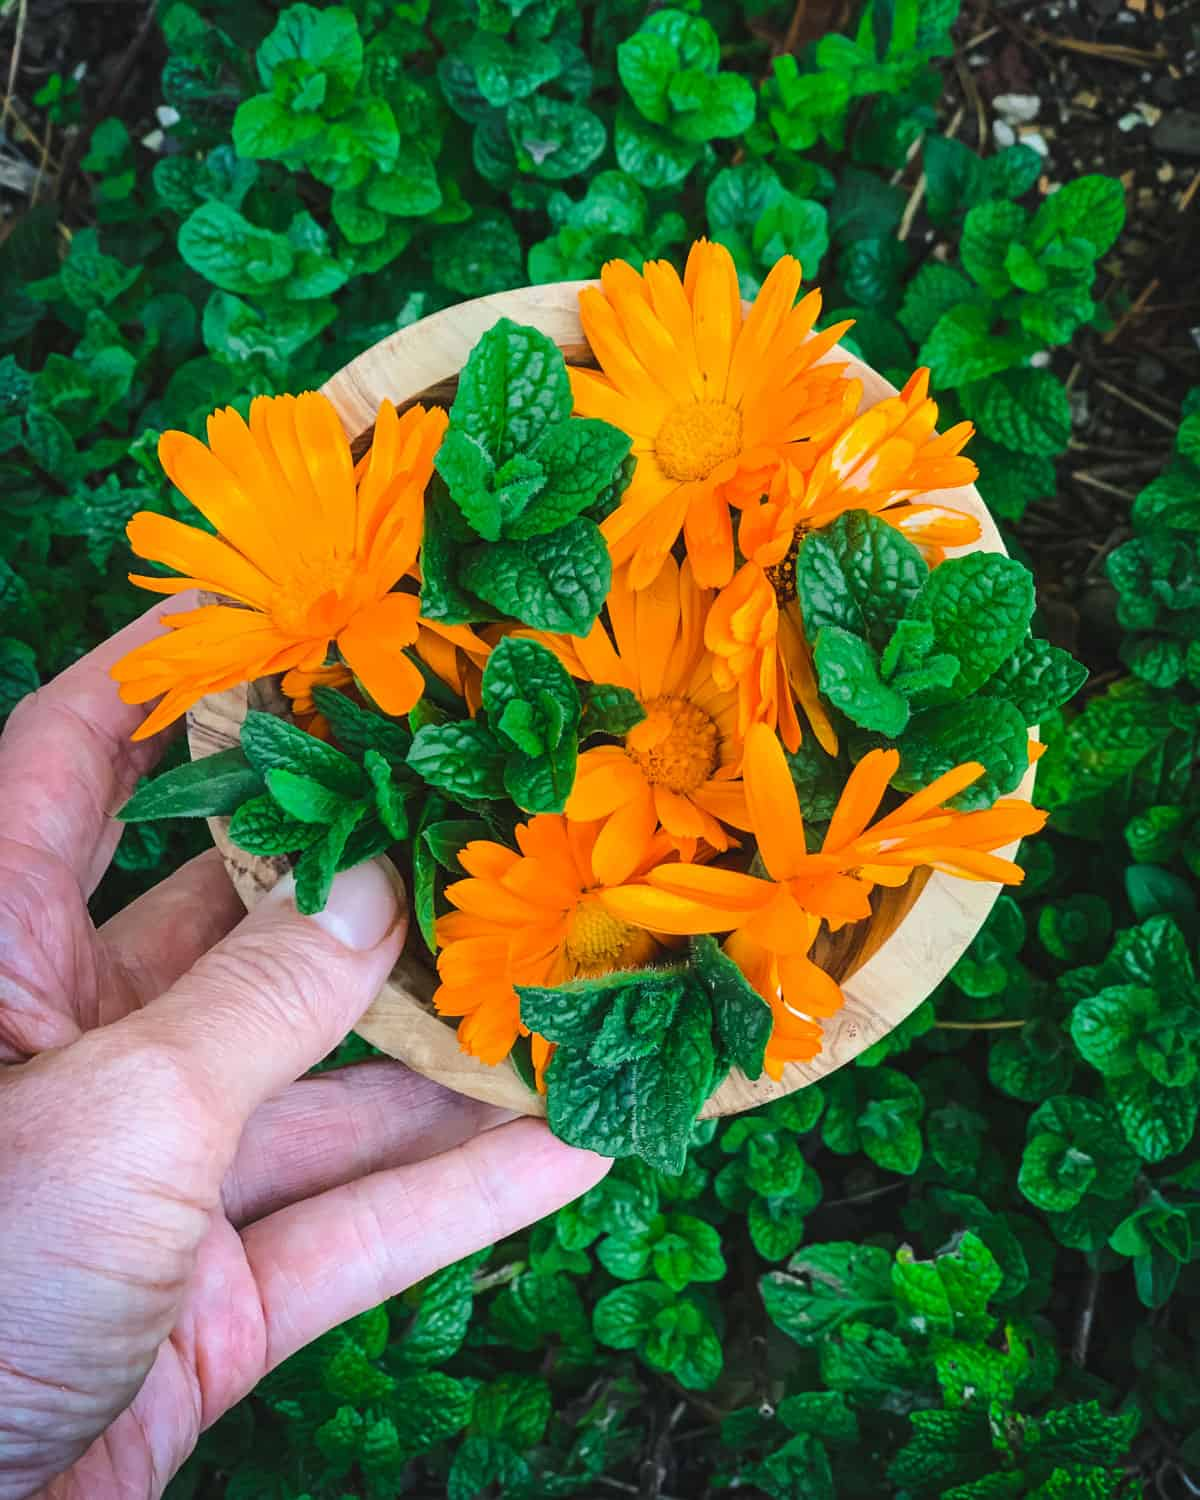 a hand holding a bowl of fresh calendula flowers and mint